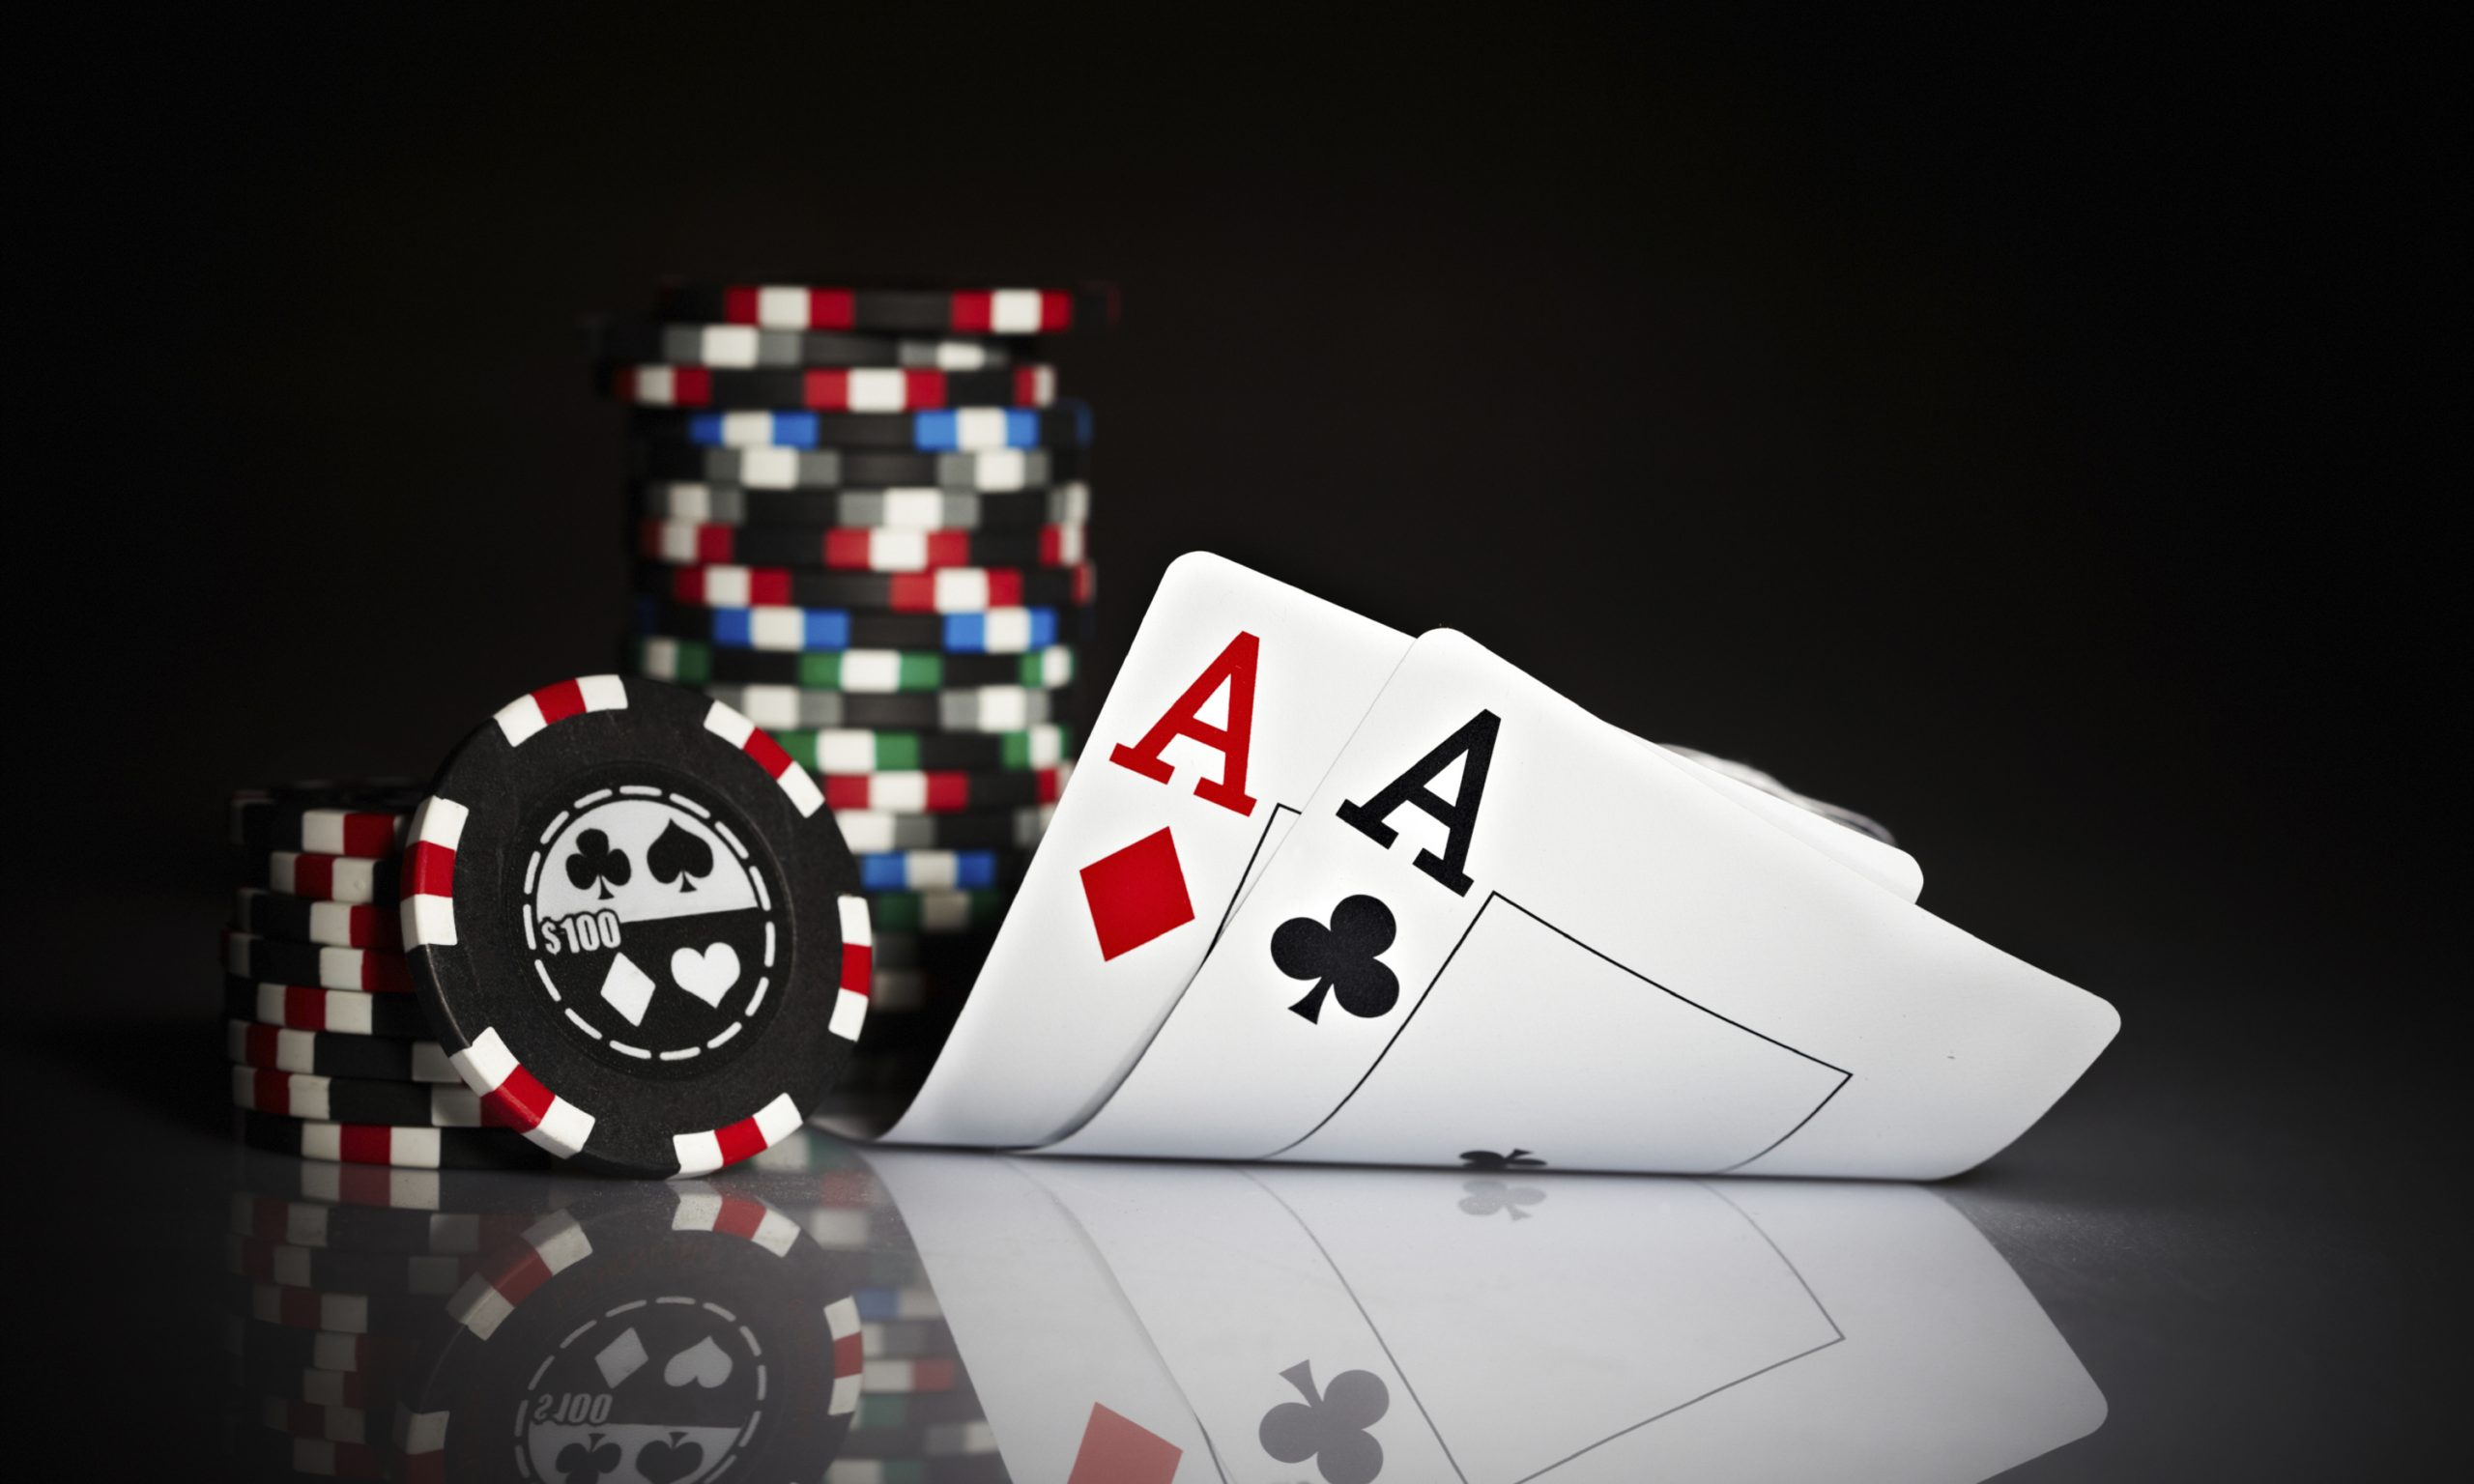 Reviews On Pkv Games Qq Online Casino Games Play Poker Game